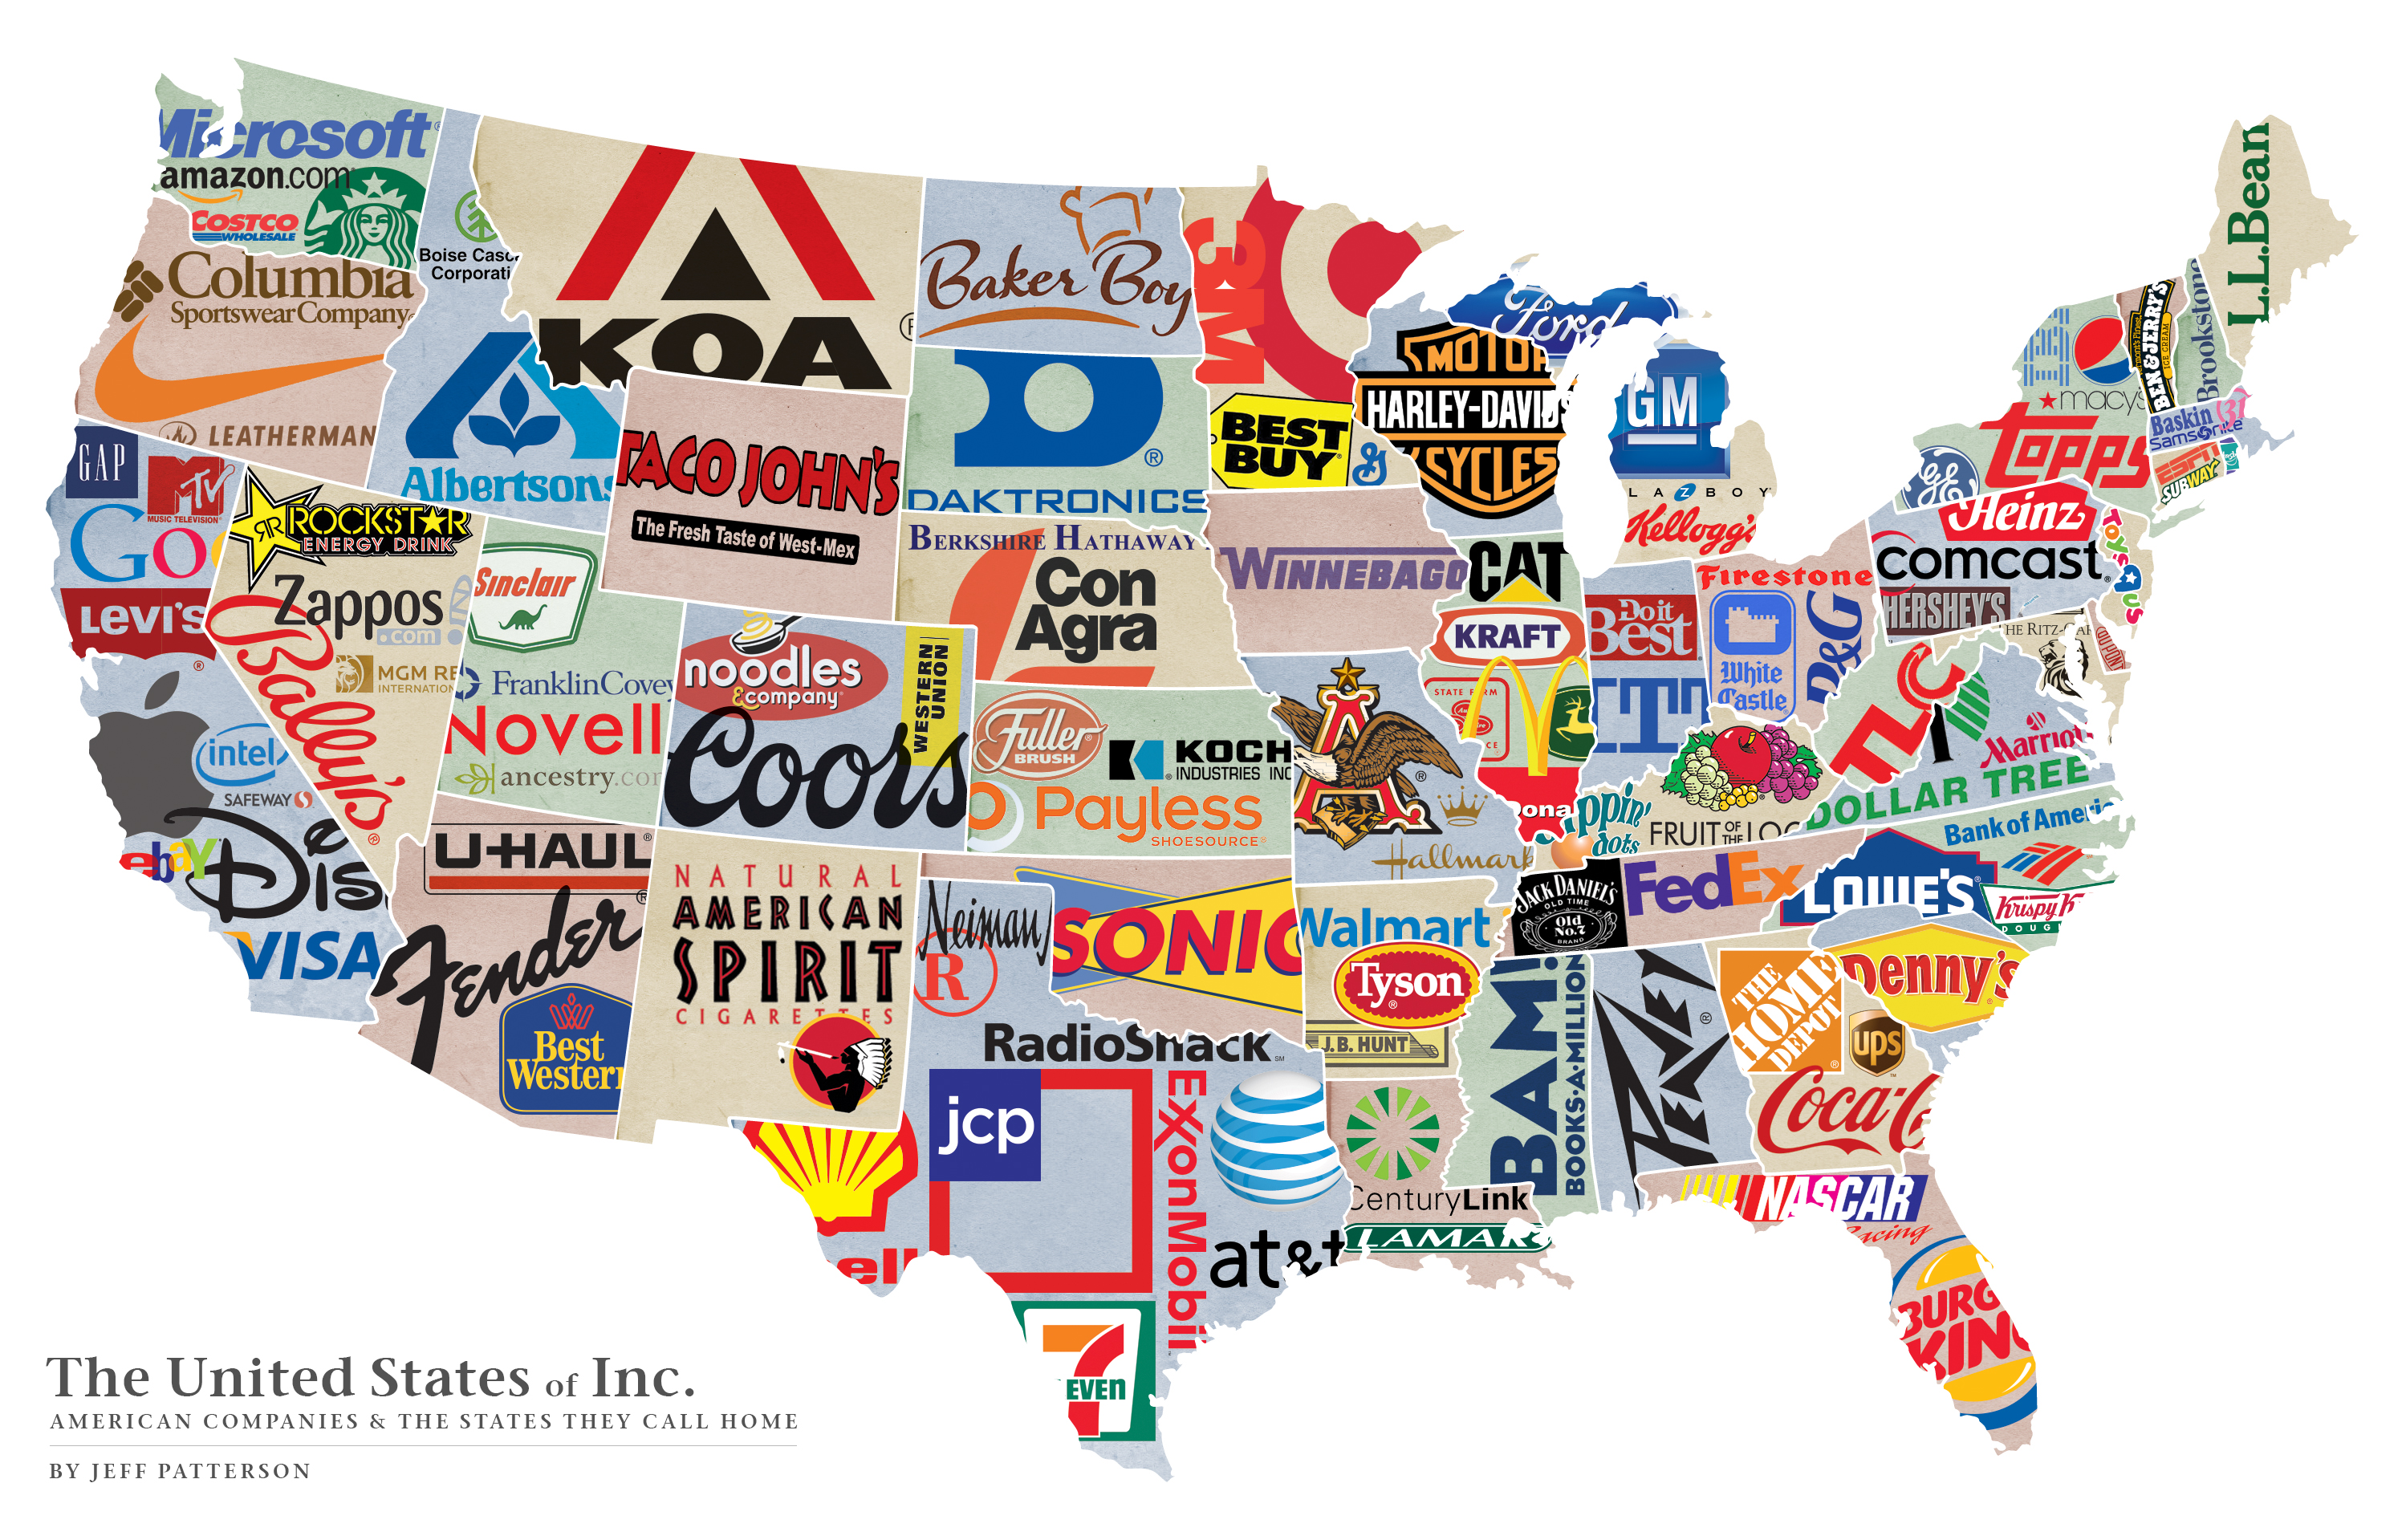 USA Map Vector Layered Istockphoto Illustration Converte - Koa us map